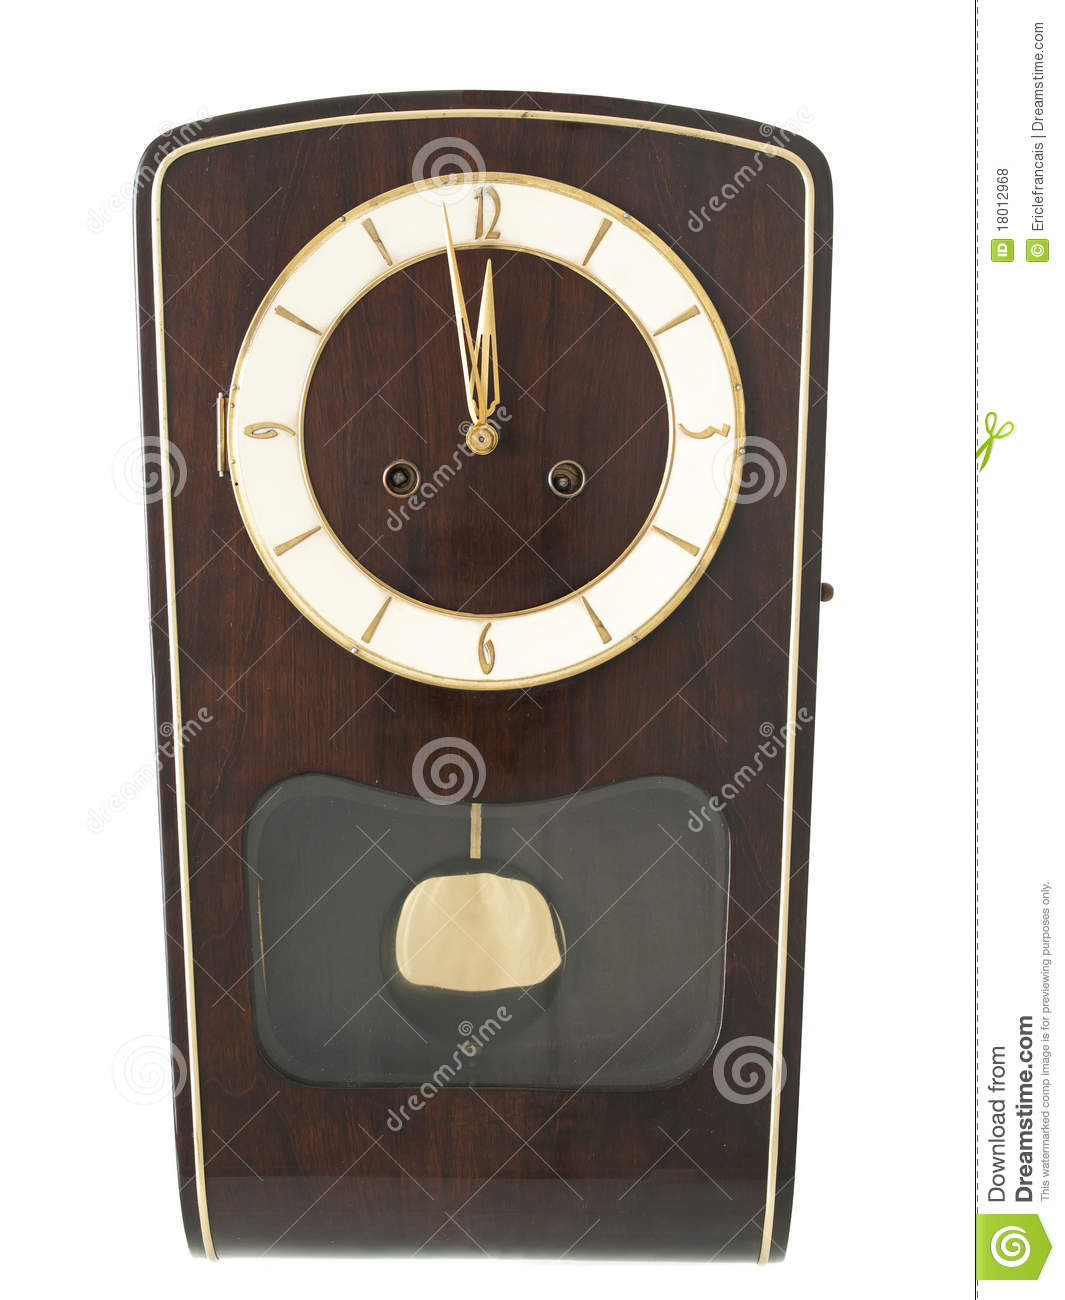 Grandmother Wall Clock Stock Photo Image Of Antique 18012968